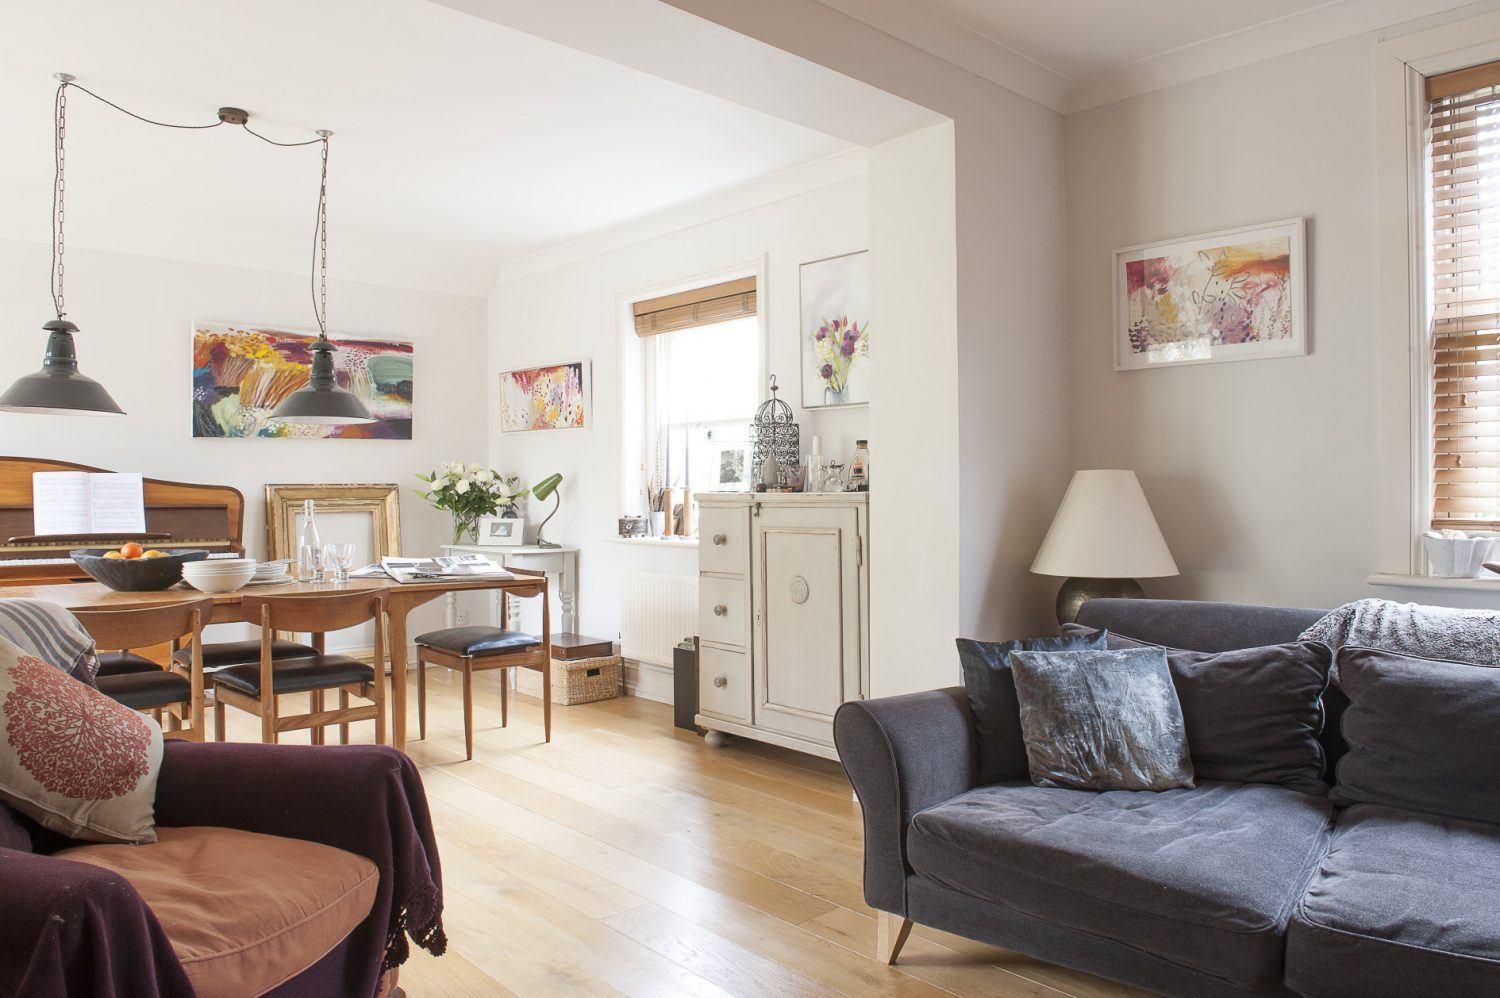 The open plan sitting room and dining area is an eclectic mix of styles that somehow work perfectly